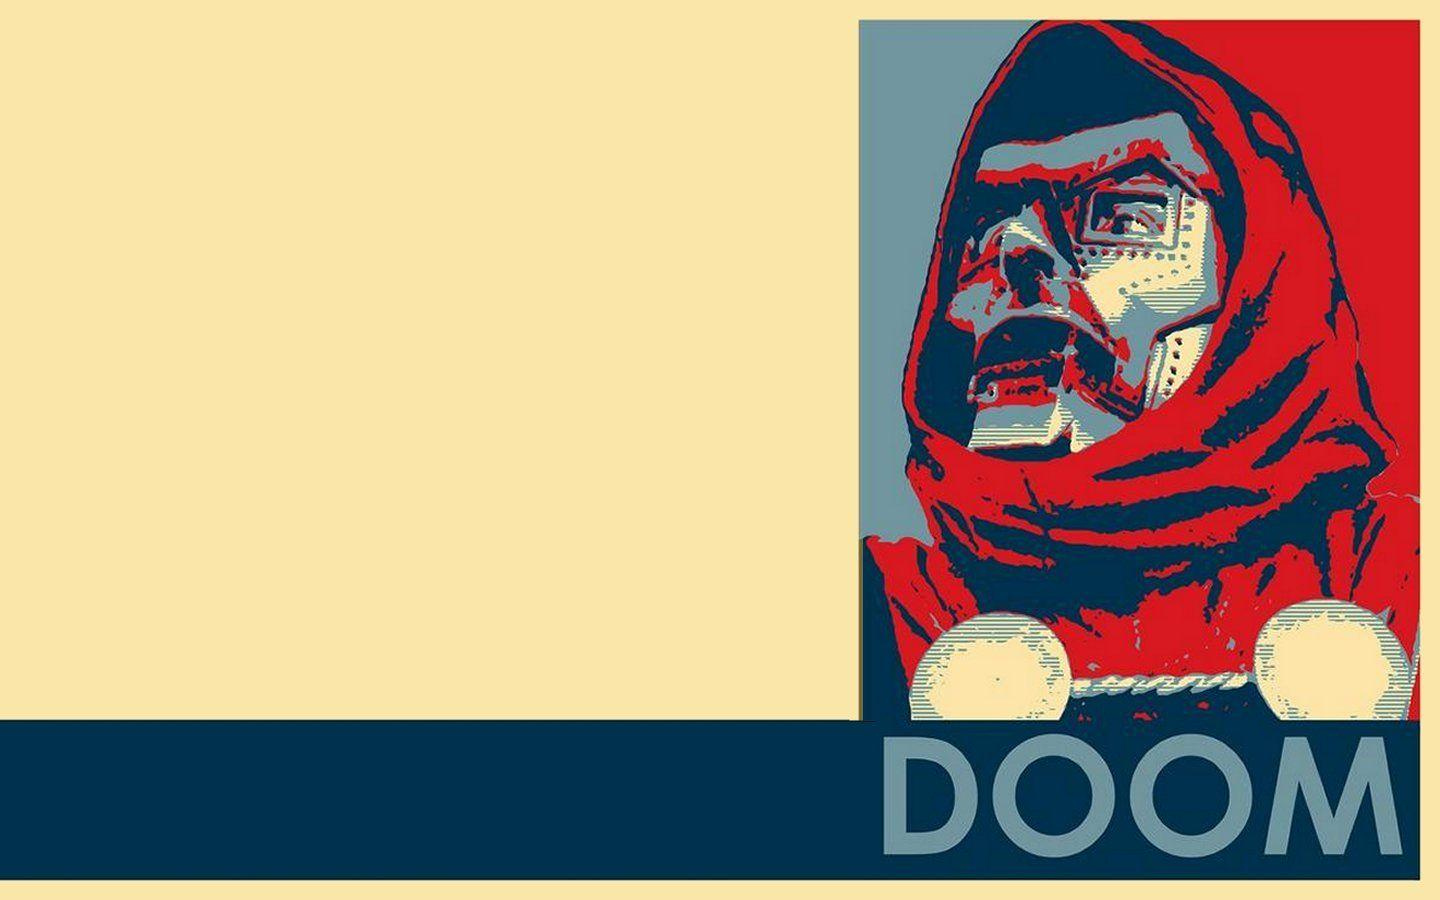 mf doom wallpaper 9 - photo #35